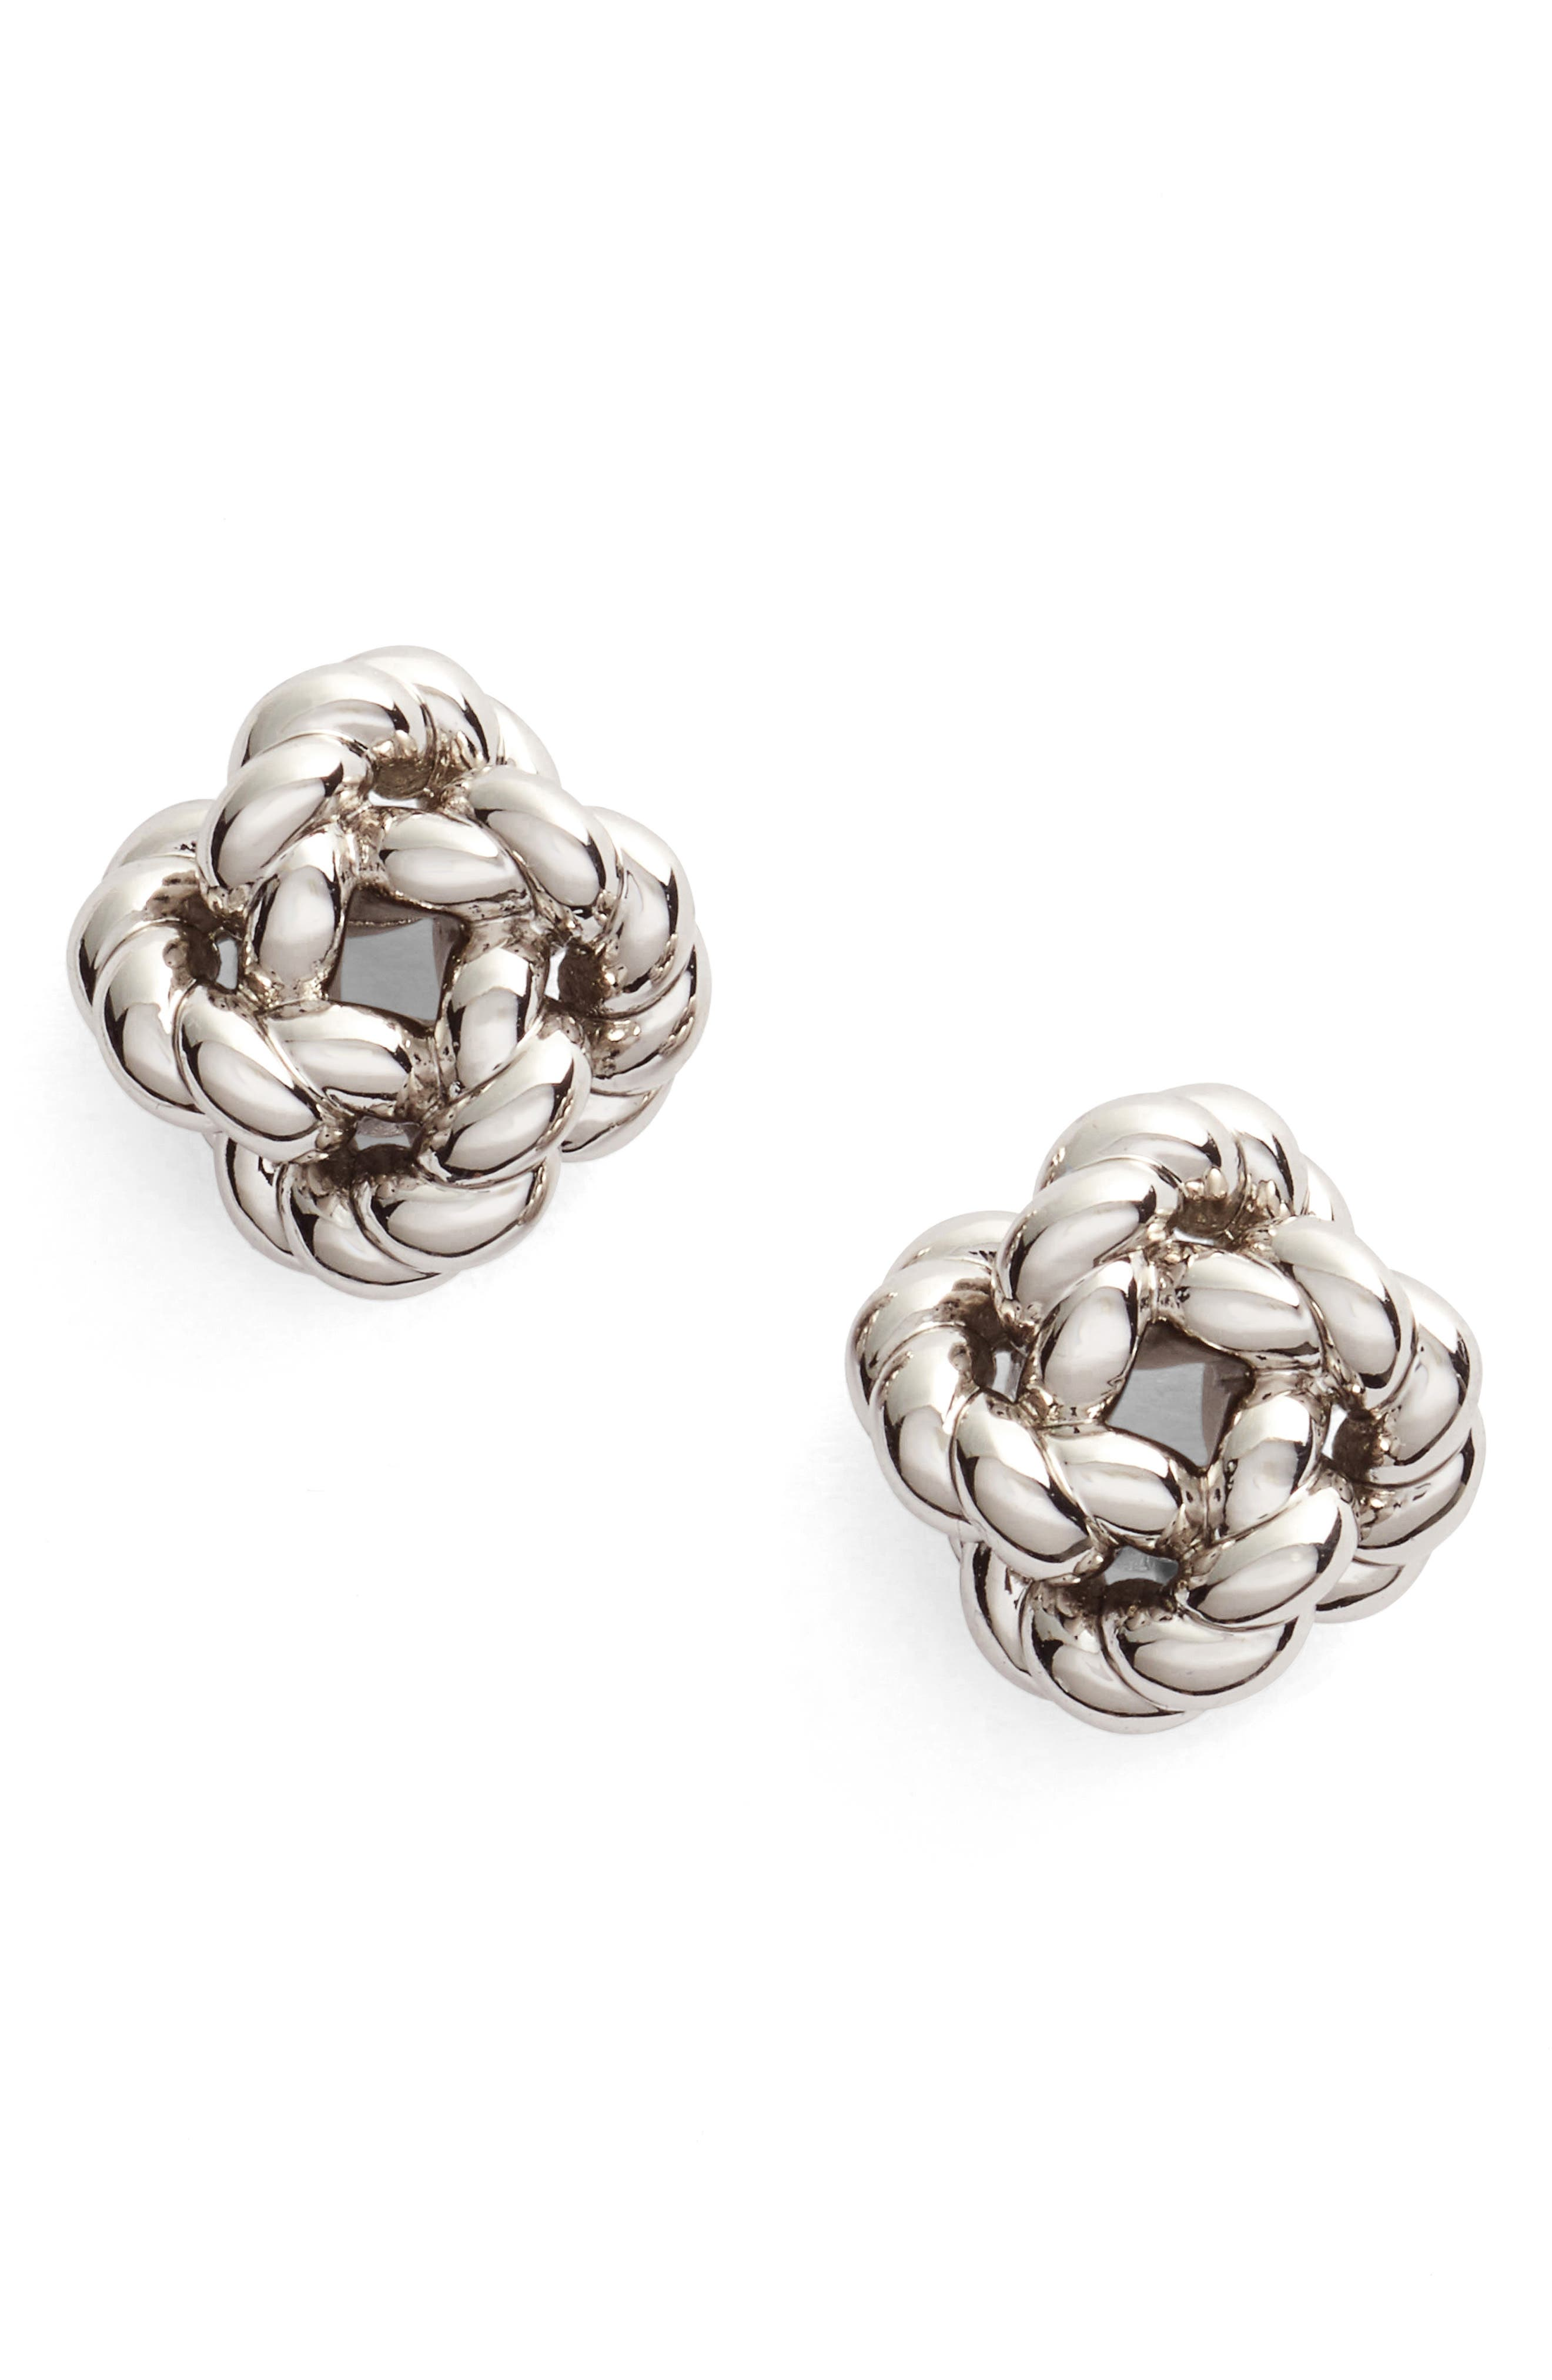 Rope Knot Stud Earrings,                             Main thumbnail 1, color,                             TORY SILVER